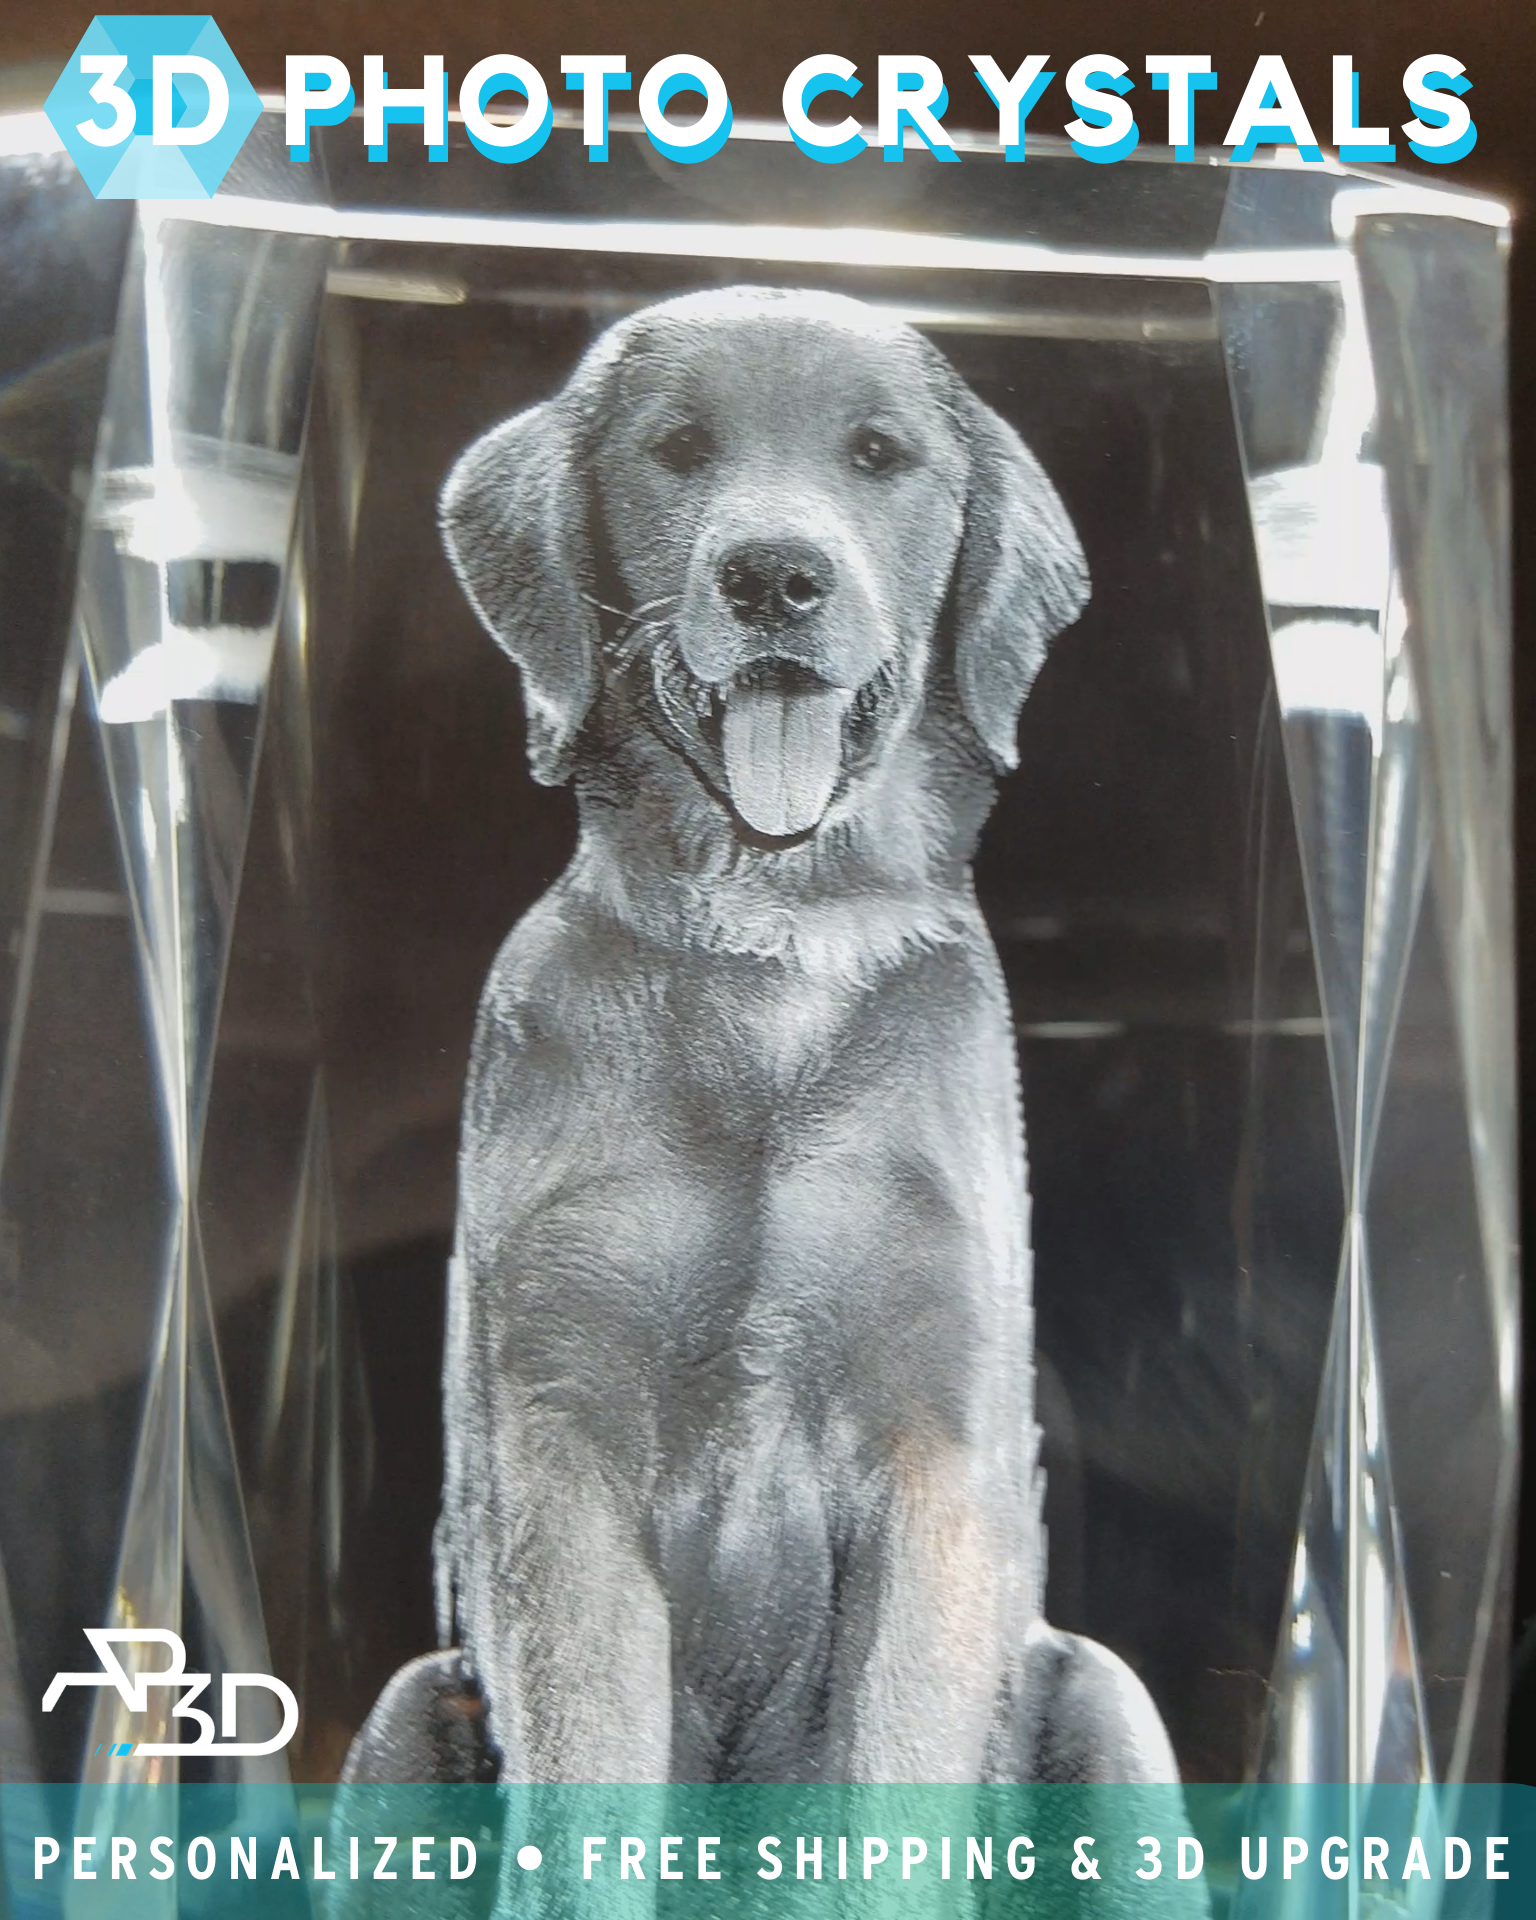 Artpix 3d Coupons 3d Crystal Photo Gift Deals Artpix 3d Video Video In 2020 Cute Dogs And Puppies Pet Remembrance Cute Dogs